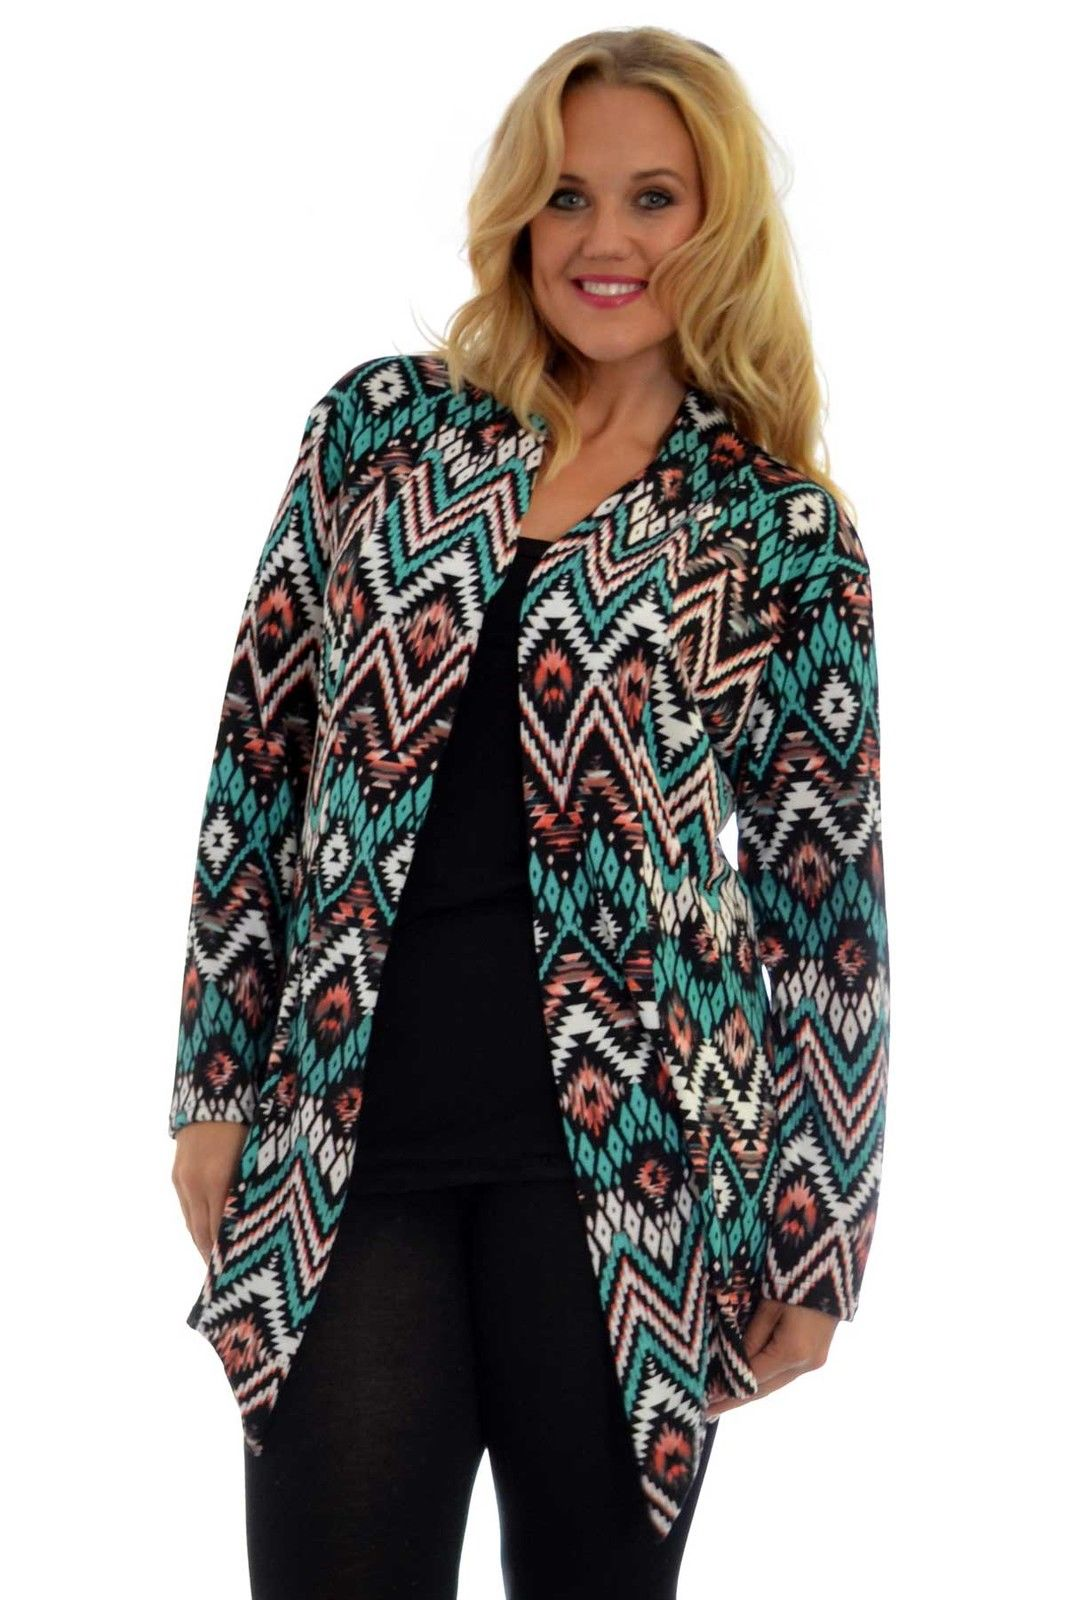 Sweaters & Cardigans. Customized sweaters and cardigans add a professional layer to Free art assistance· Expert customer service· Best value· Easy orderingStyles: V-Neck, Crew Neck, Vests, Cardigan.